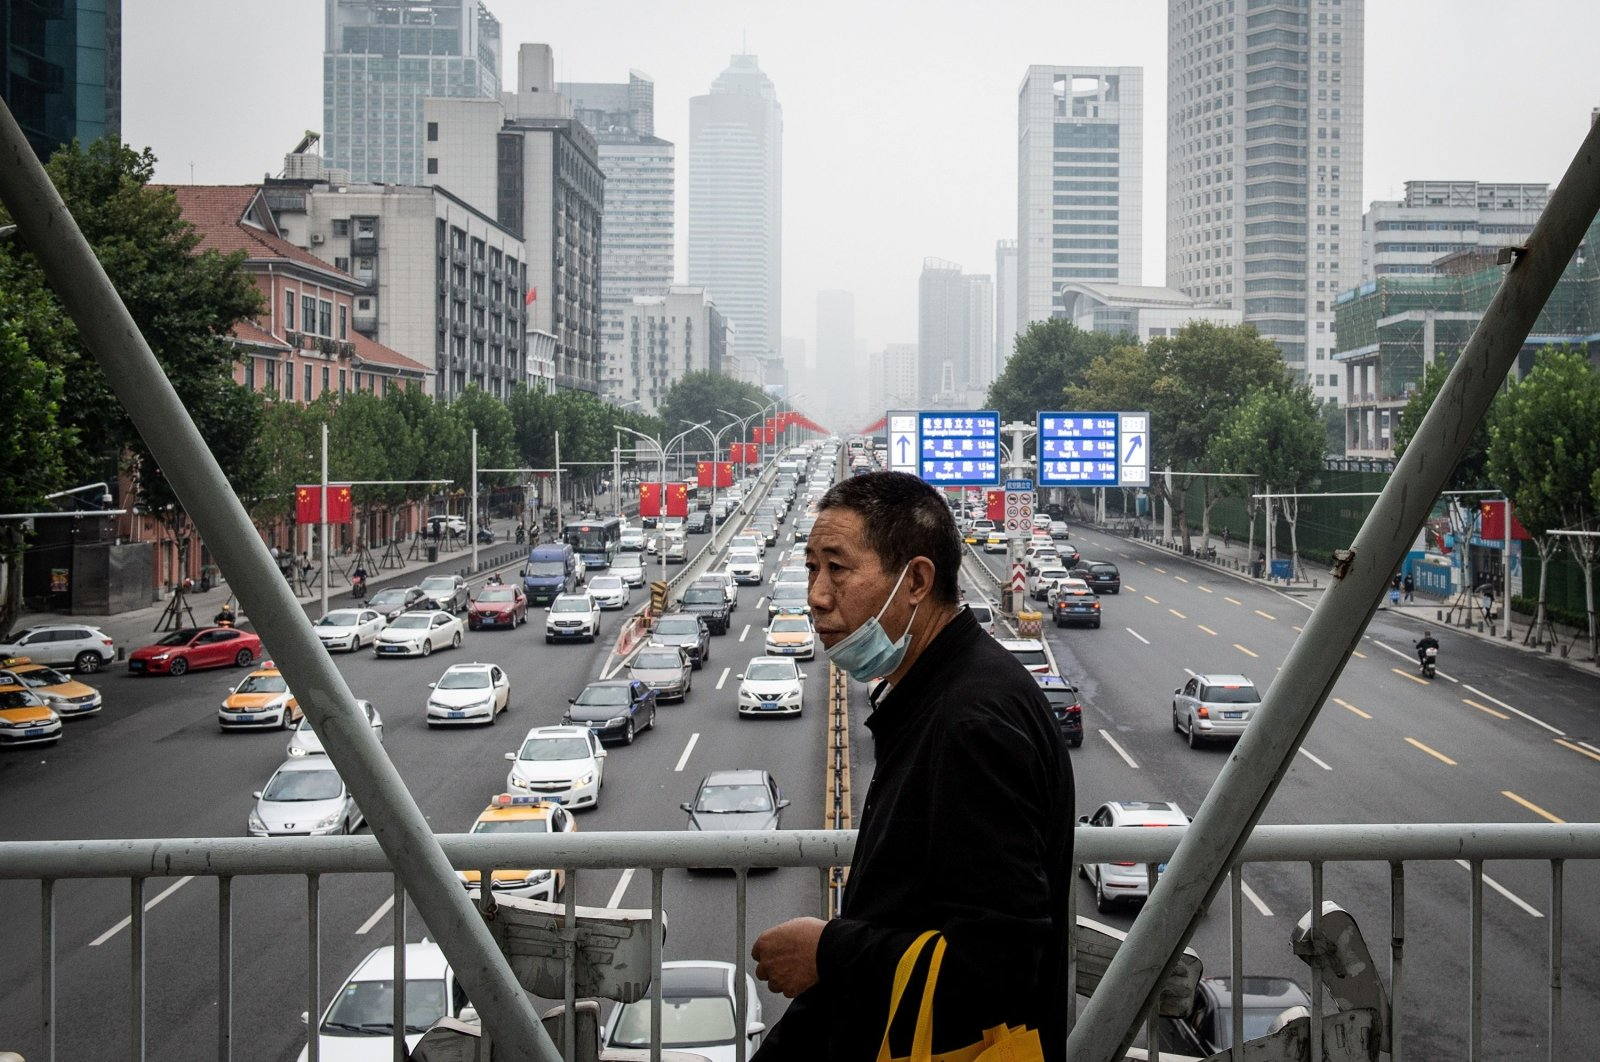 A man walks along a street in Wuhan in China's central Hubei province, Sept. 29, 2020. (AFP Photo)